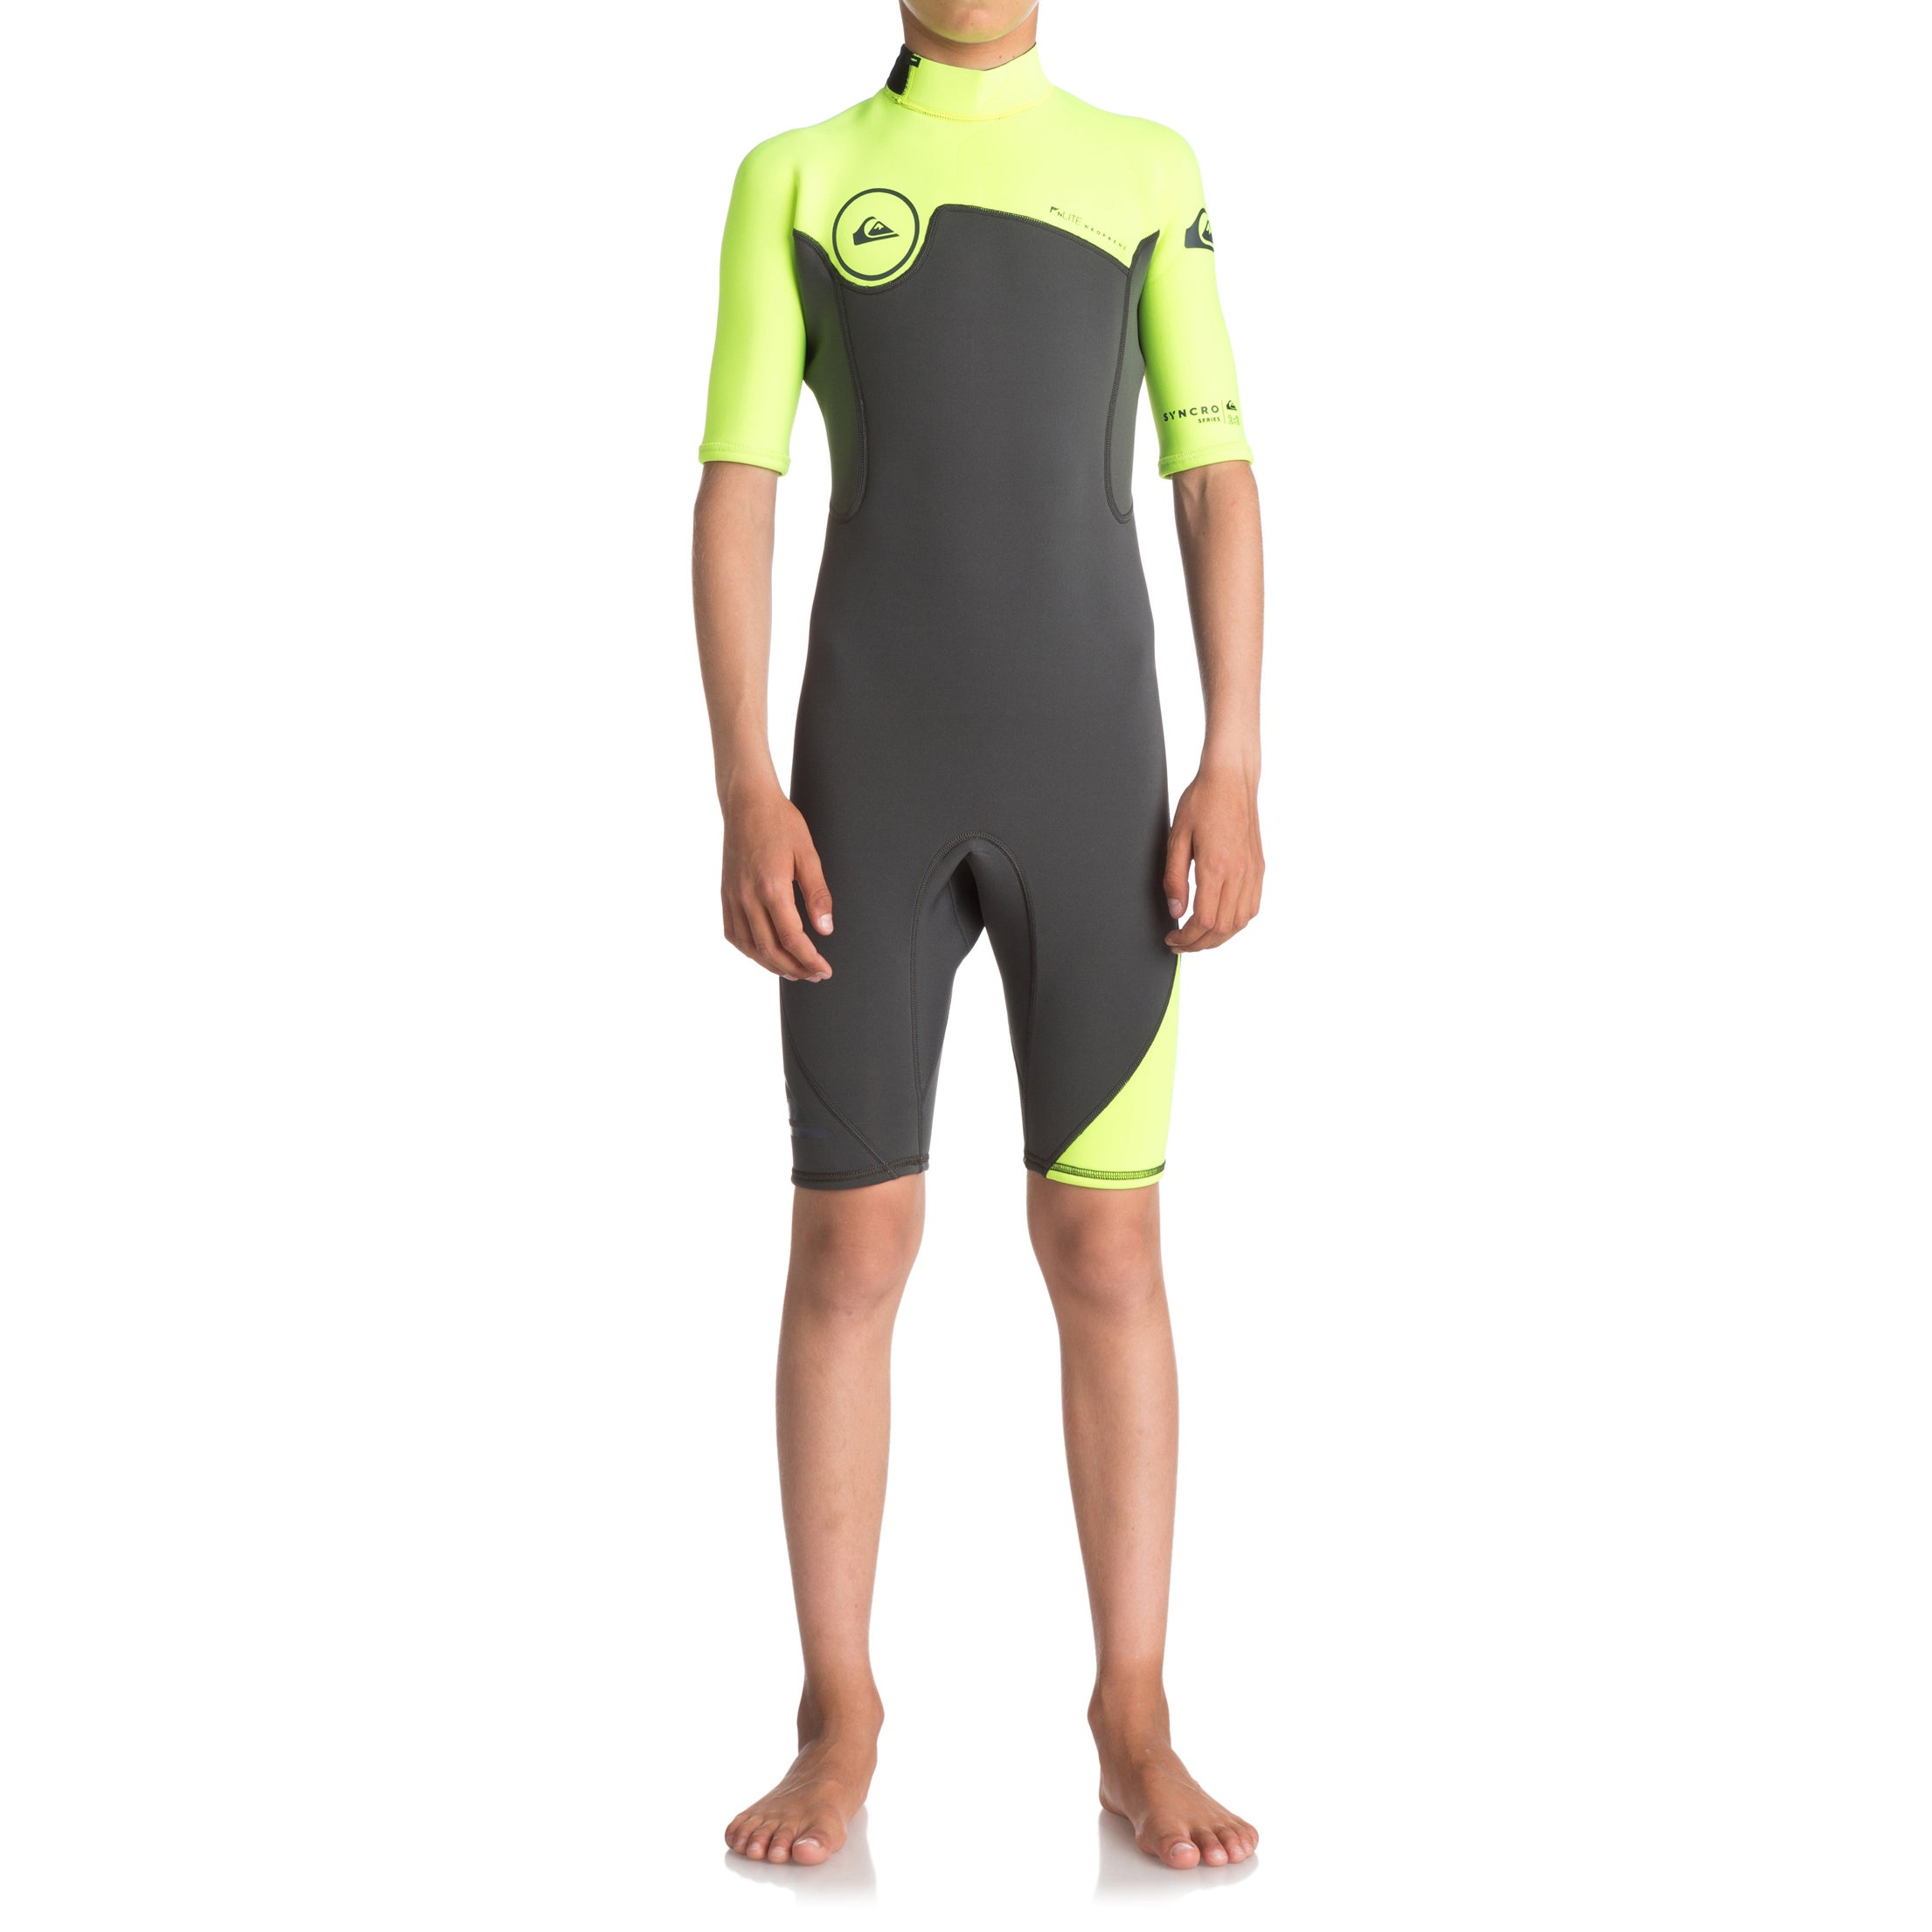 Quiksilver Syncro 2mm 2018 Back Zip Short Sleeve Wetsuit - Jet Black/ Safety Yellow